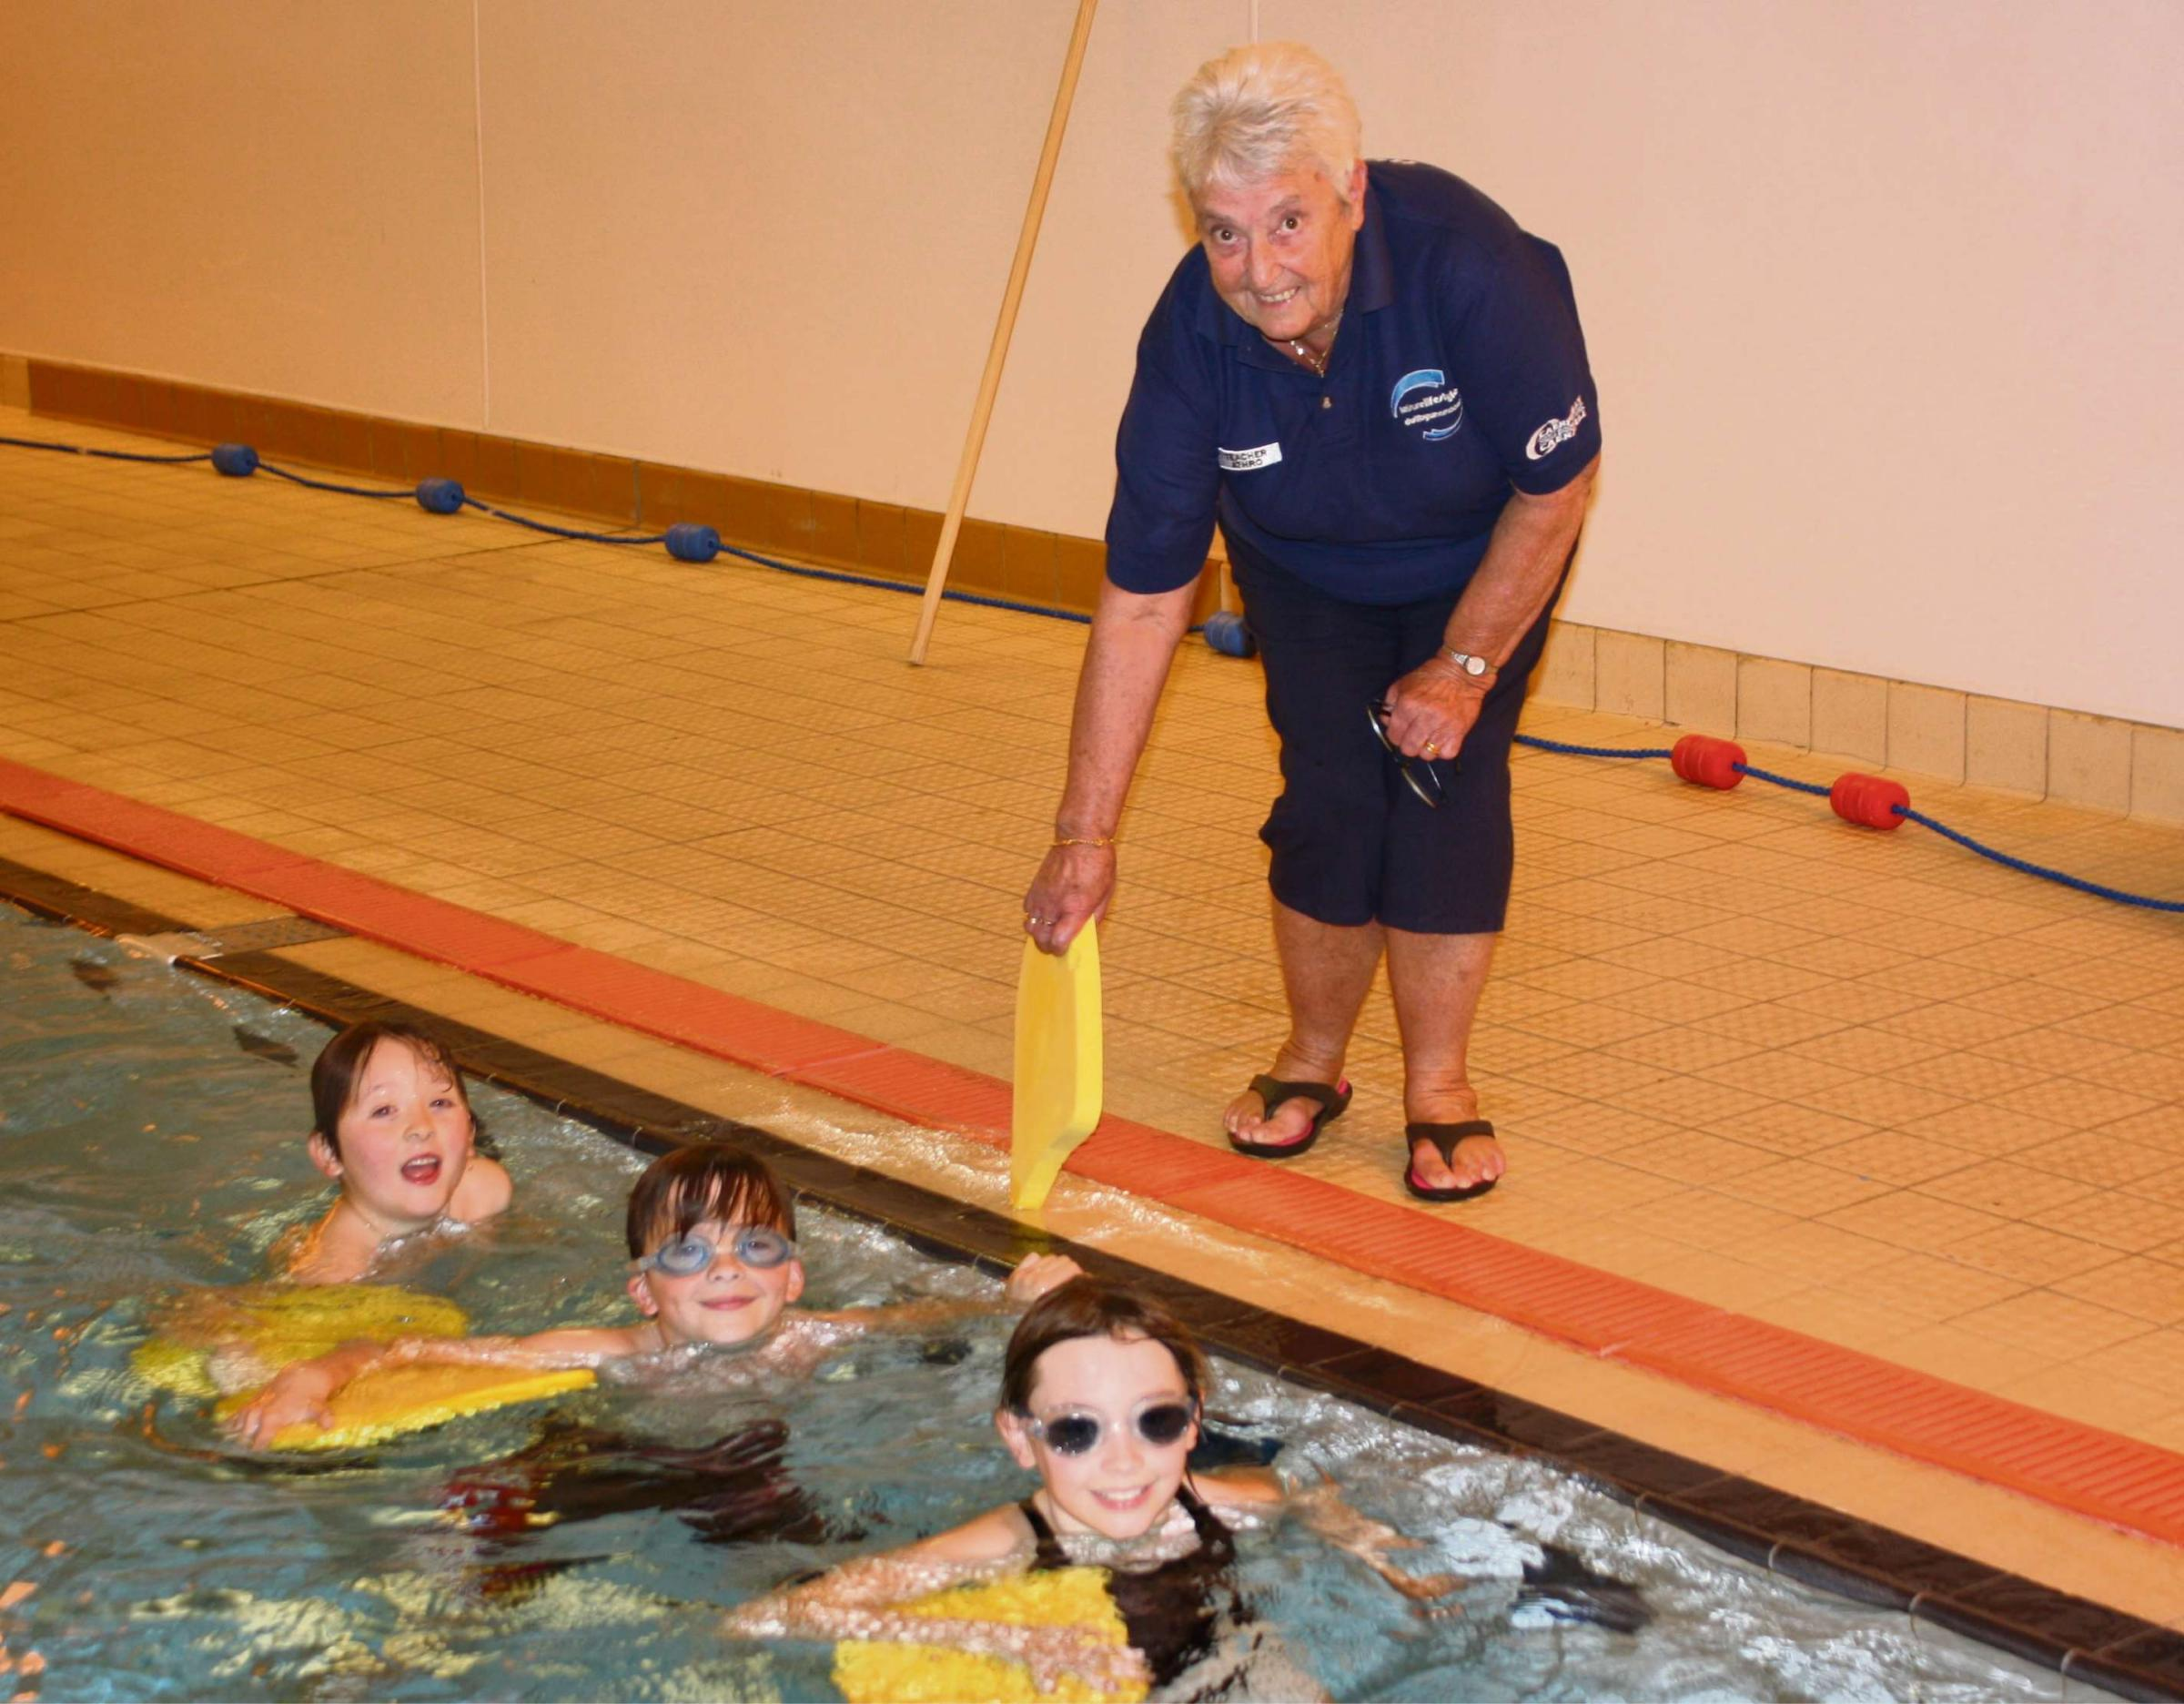 RETIRING: Anne Axford during oner of her last teaching sessions at Risca Leisure Centre with Angharad, Joshua and Oliver.